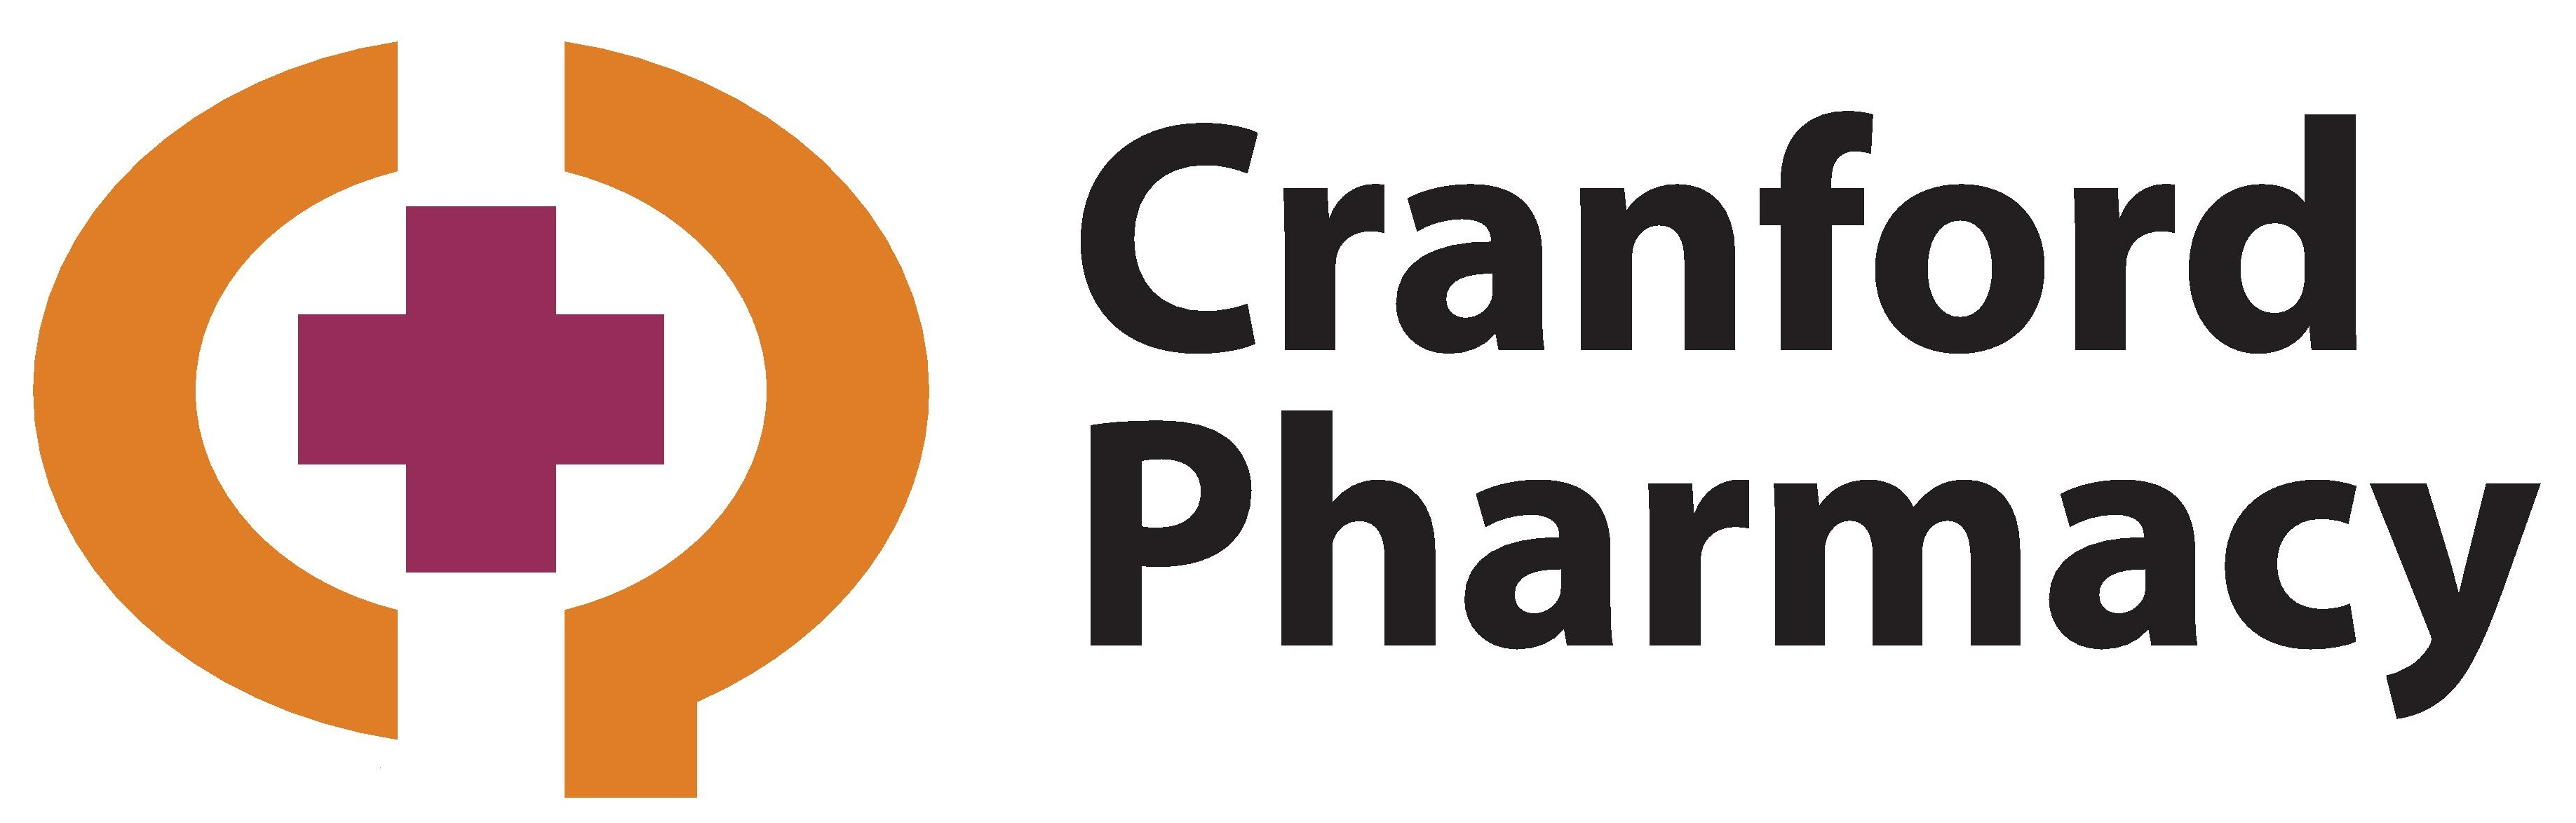 Logo - Cranford Pharmacy jpg